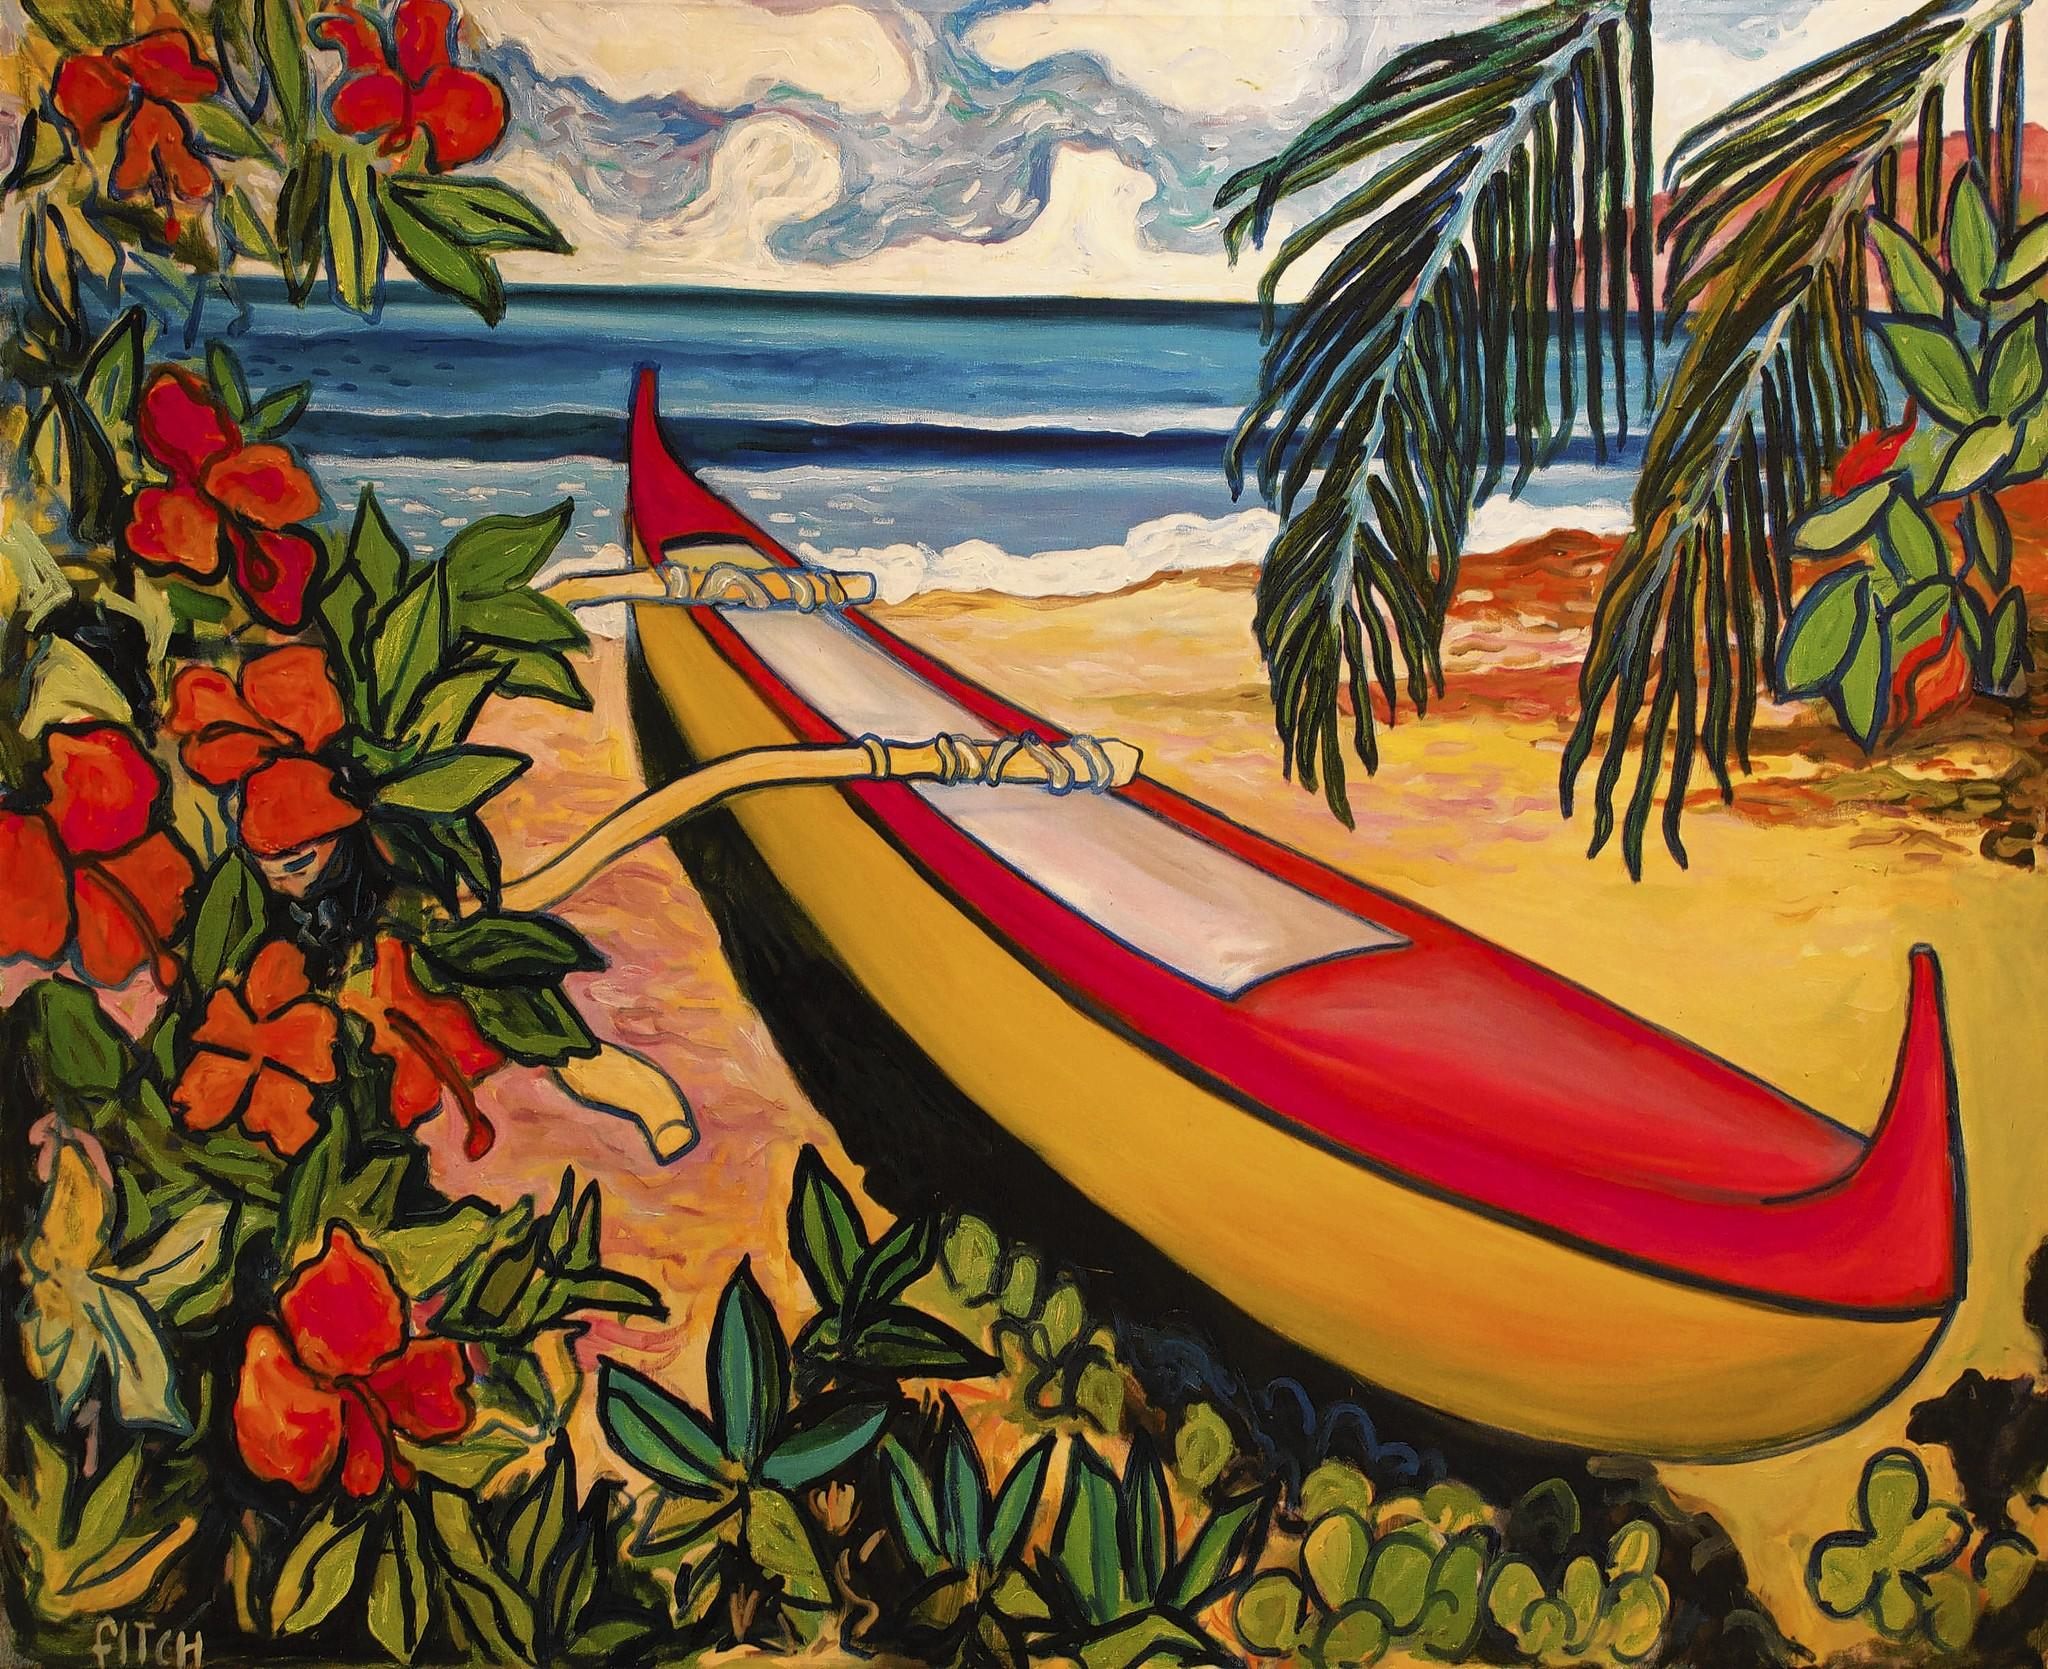 Rik Fitch, Outrigger, 21st century, Oil on canvas, , Collection of Melinda and Paul Sullivan